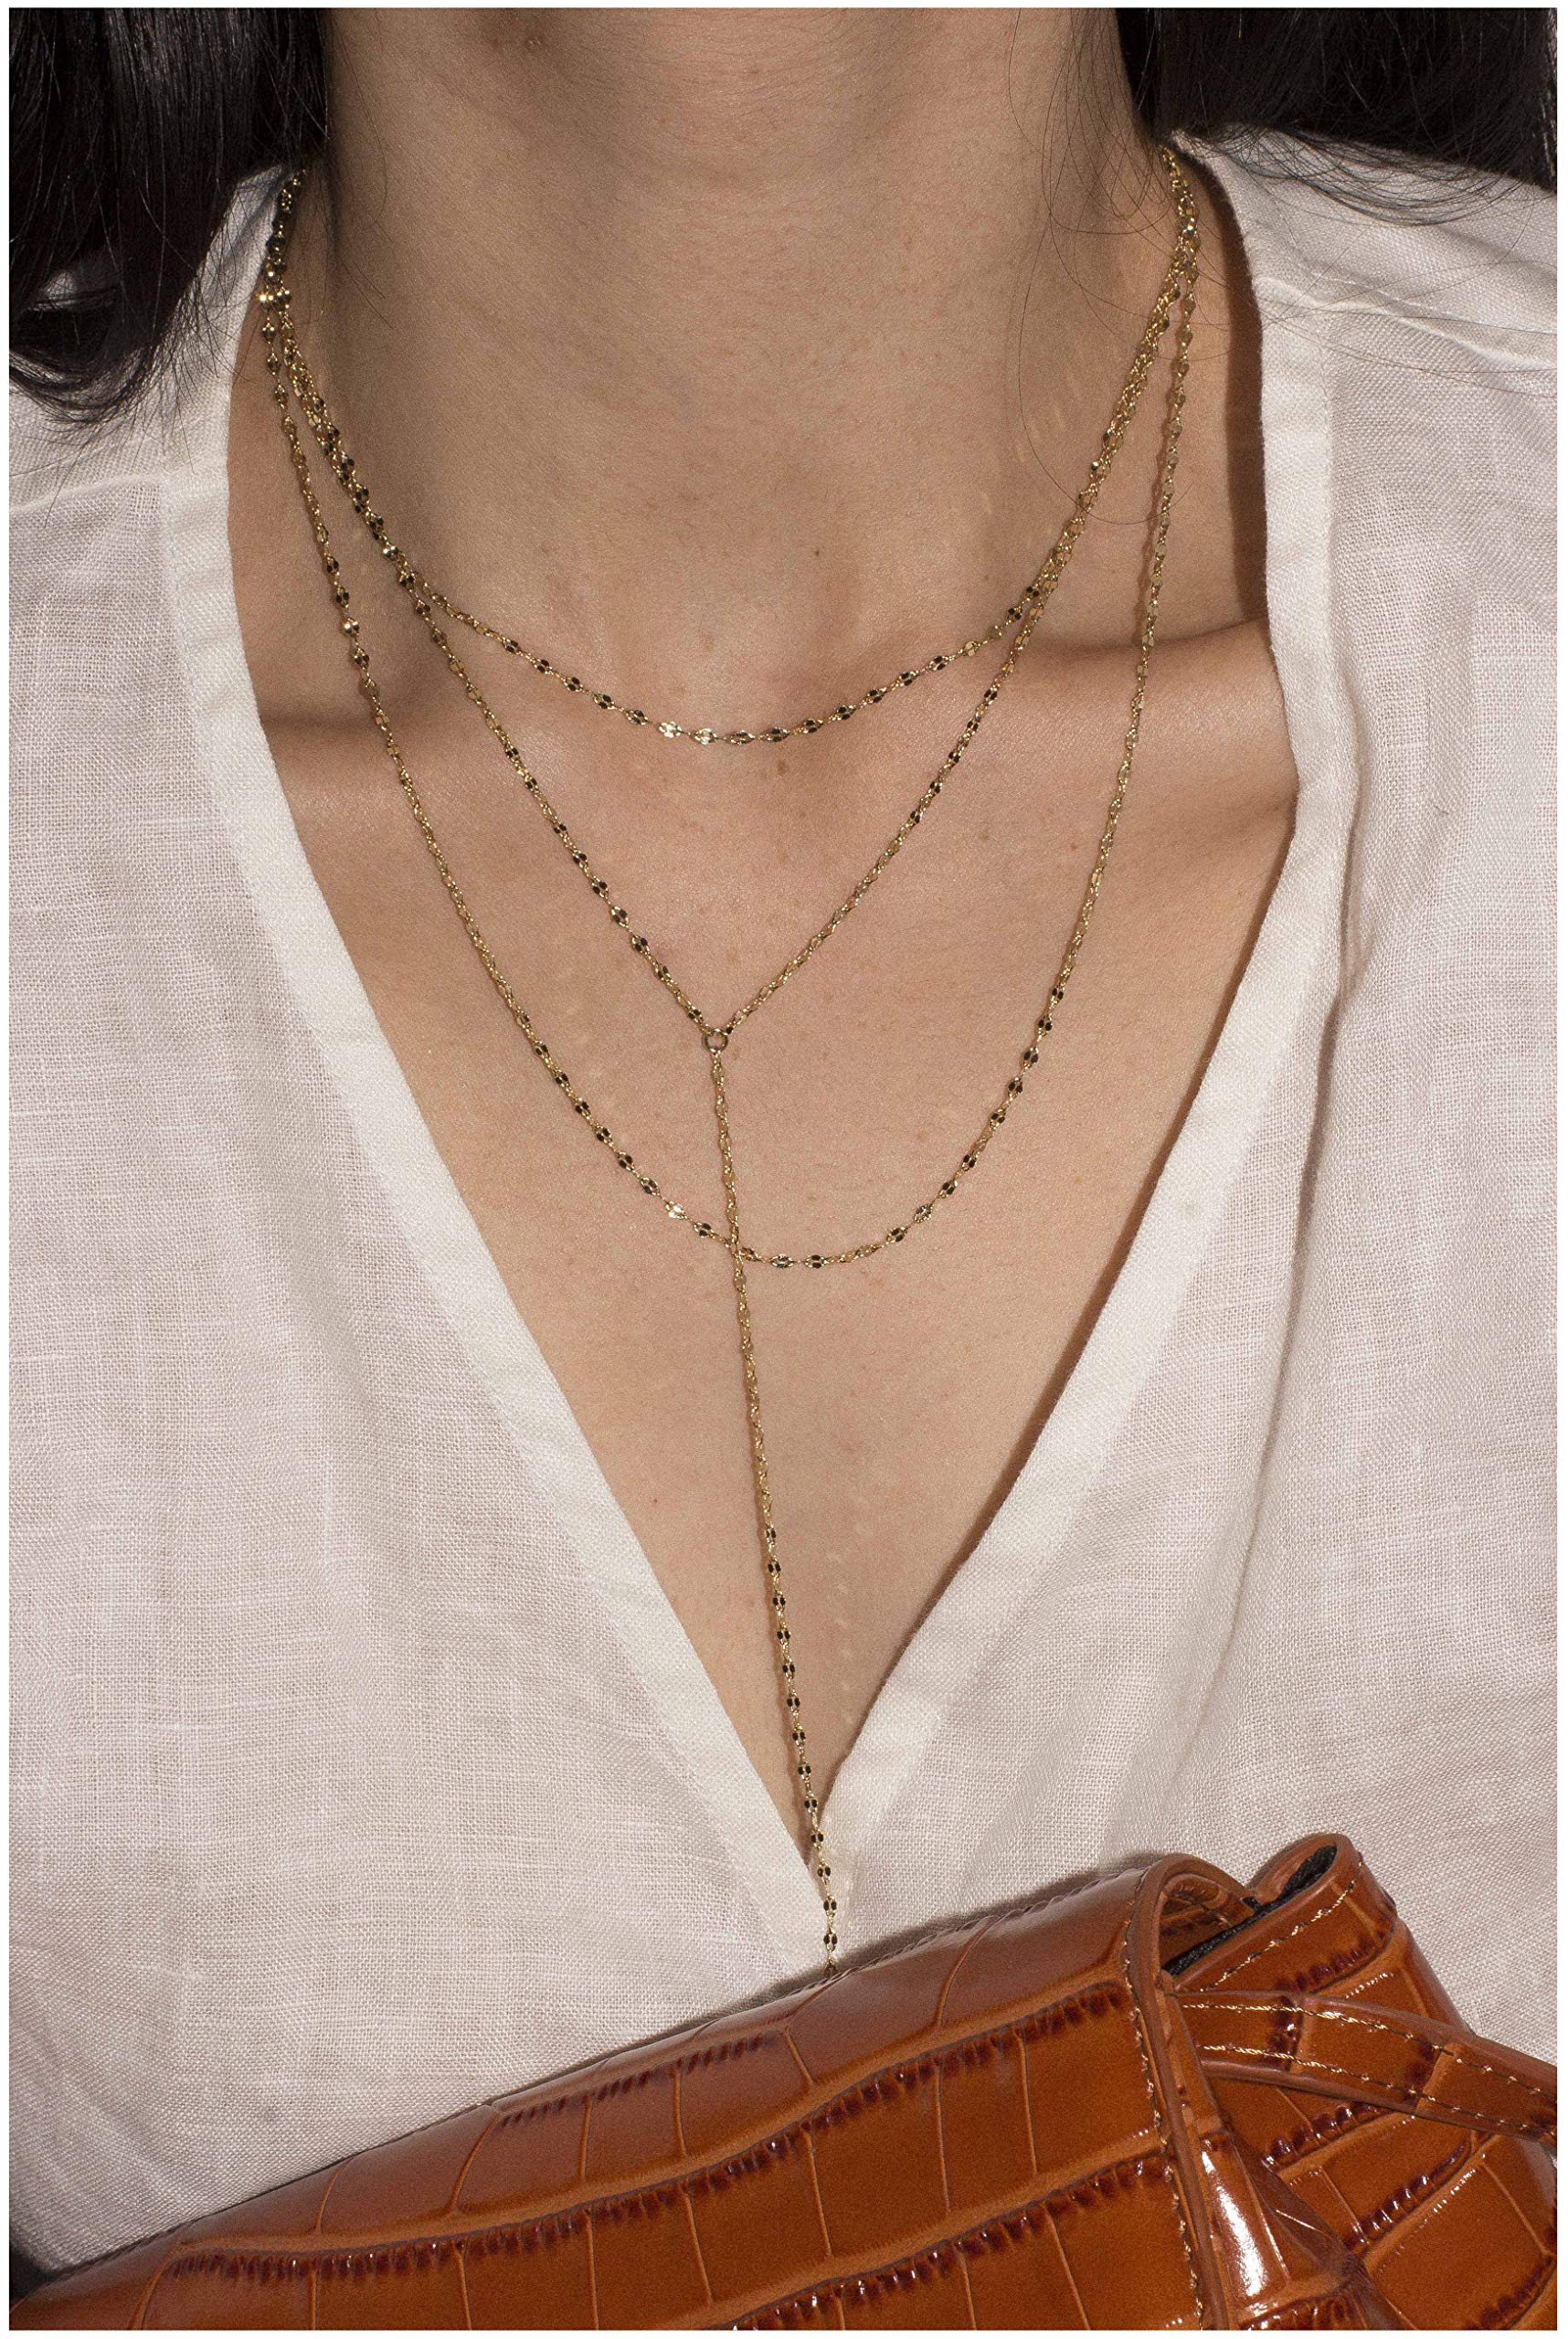 ACC PLANET Layered Necklace 14K Gold Plated Choker (Coffee Gold) Y Chain Sequins Long Chain Pendant Necklaces for Women